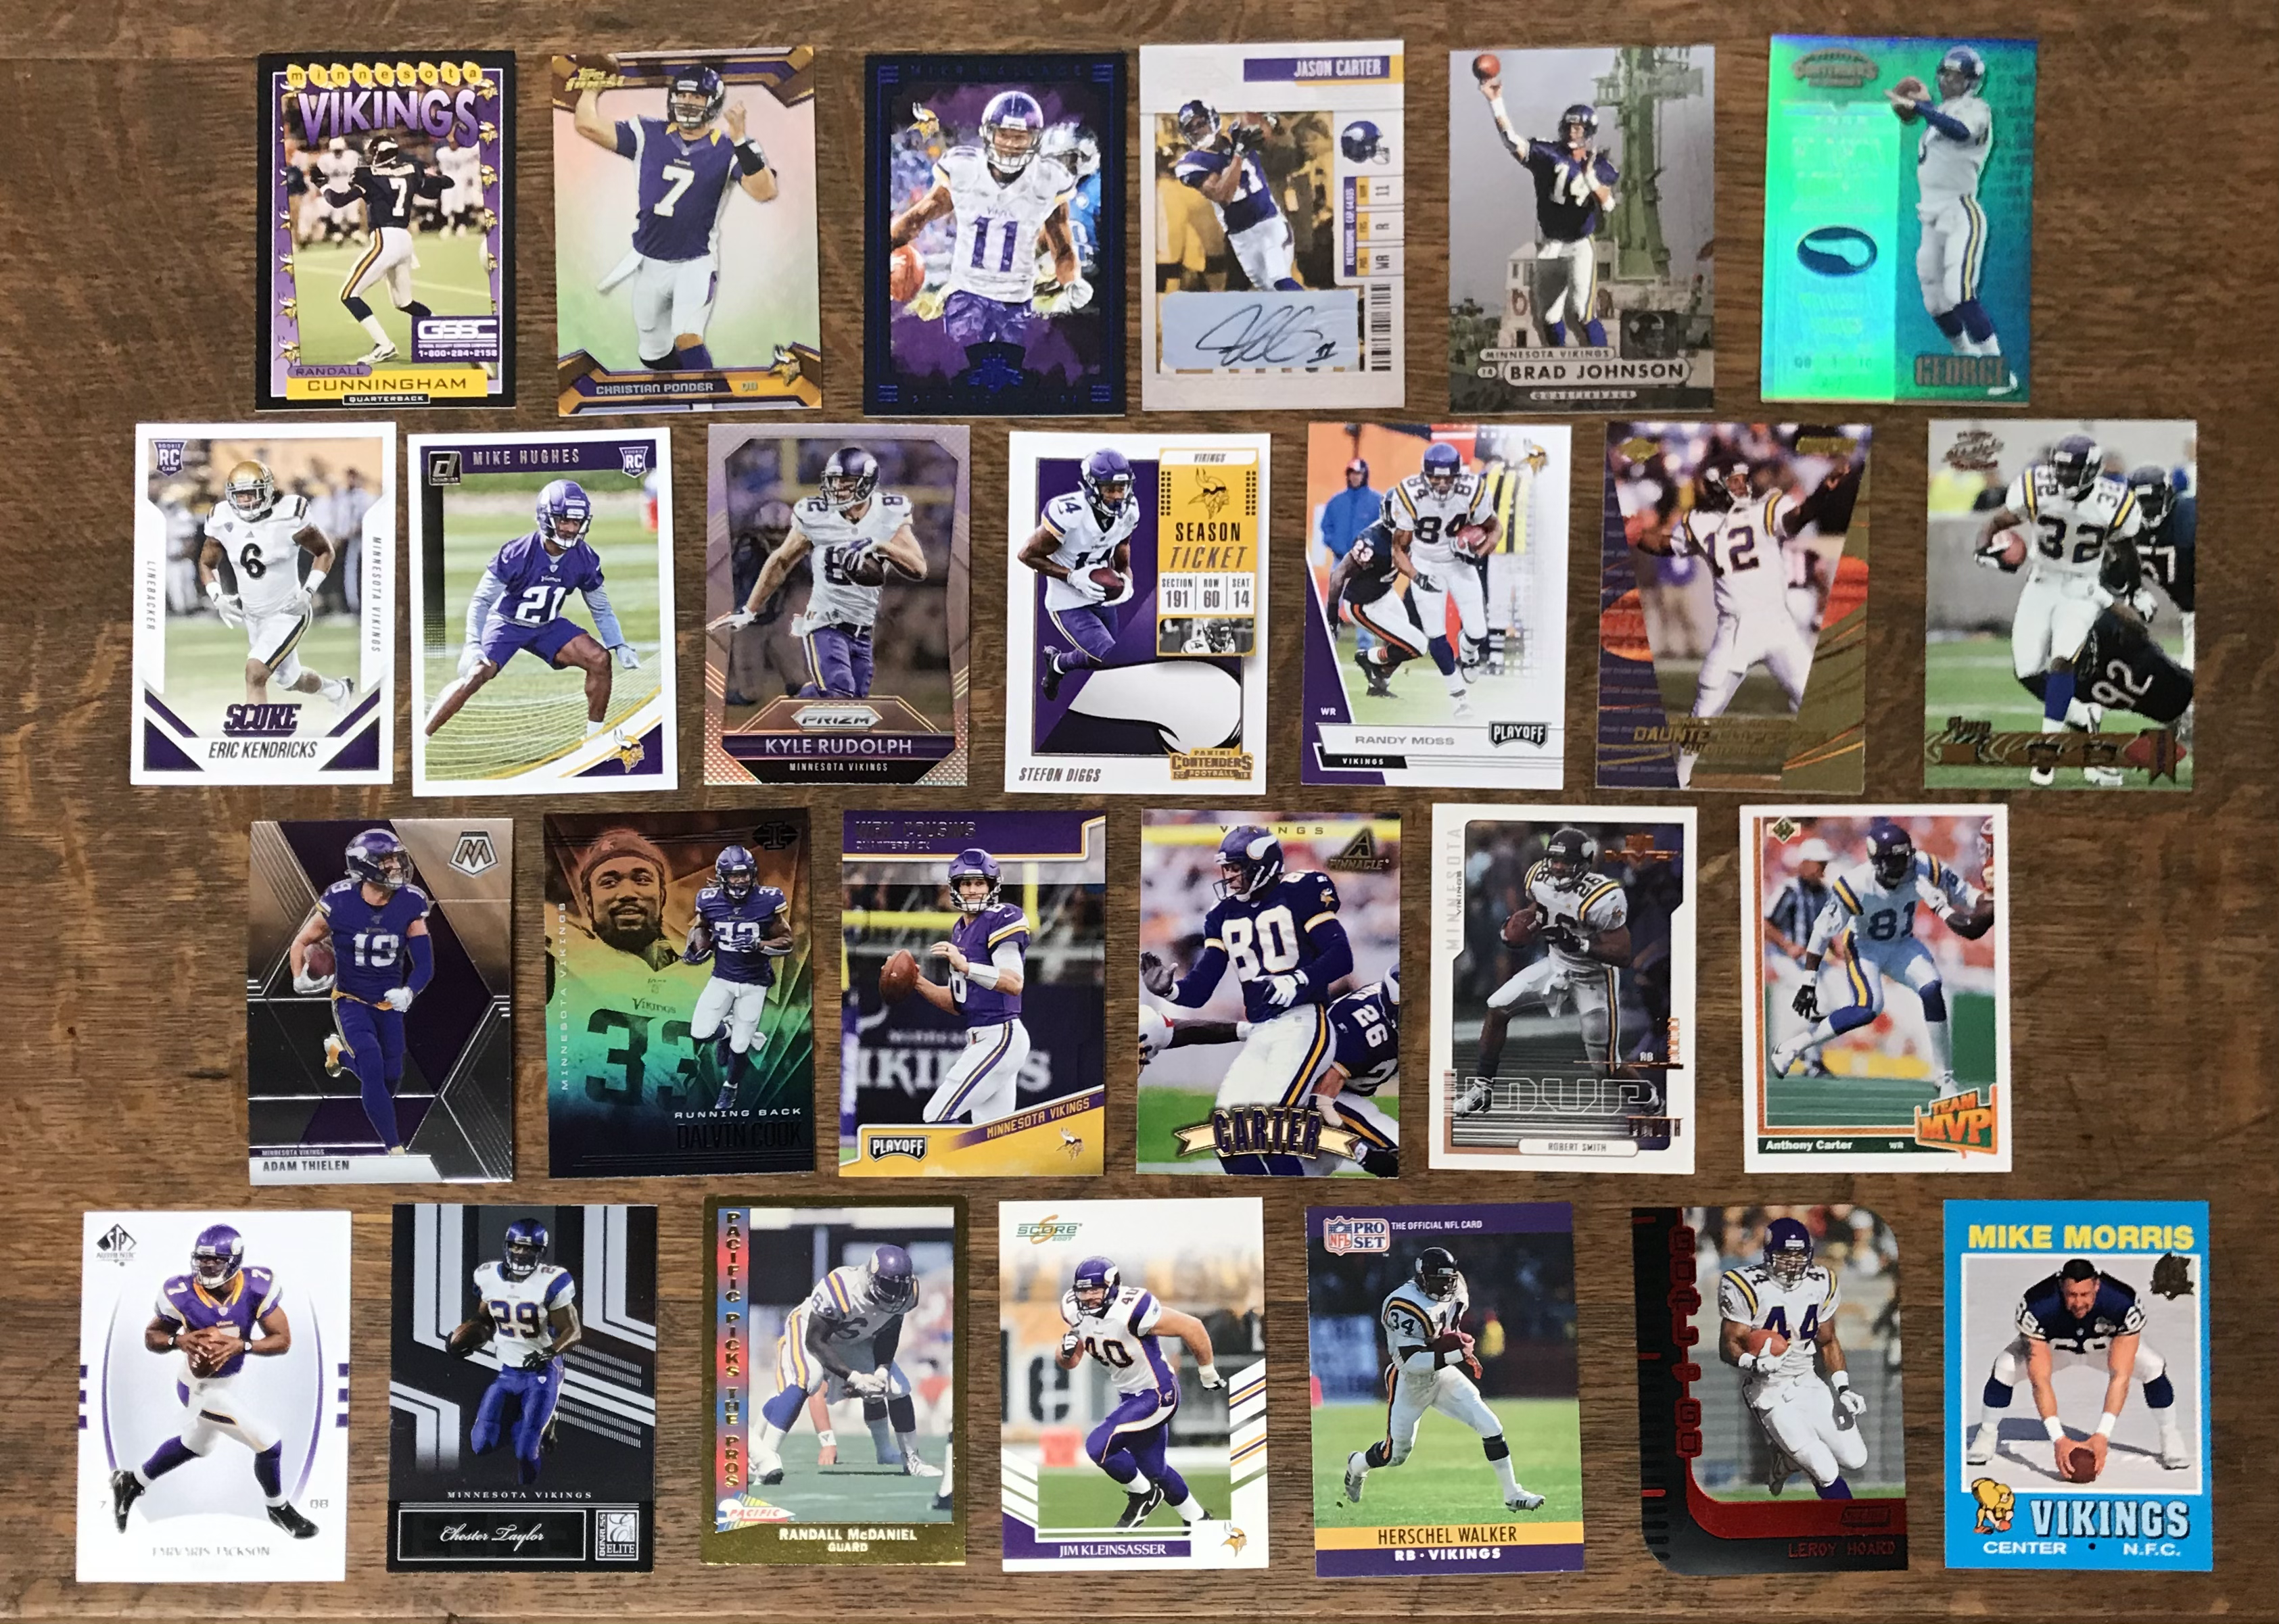 26 MN Vikings Cards donated by Justin Skjerven